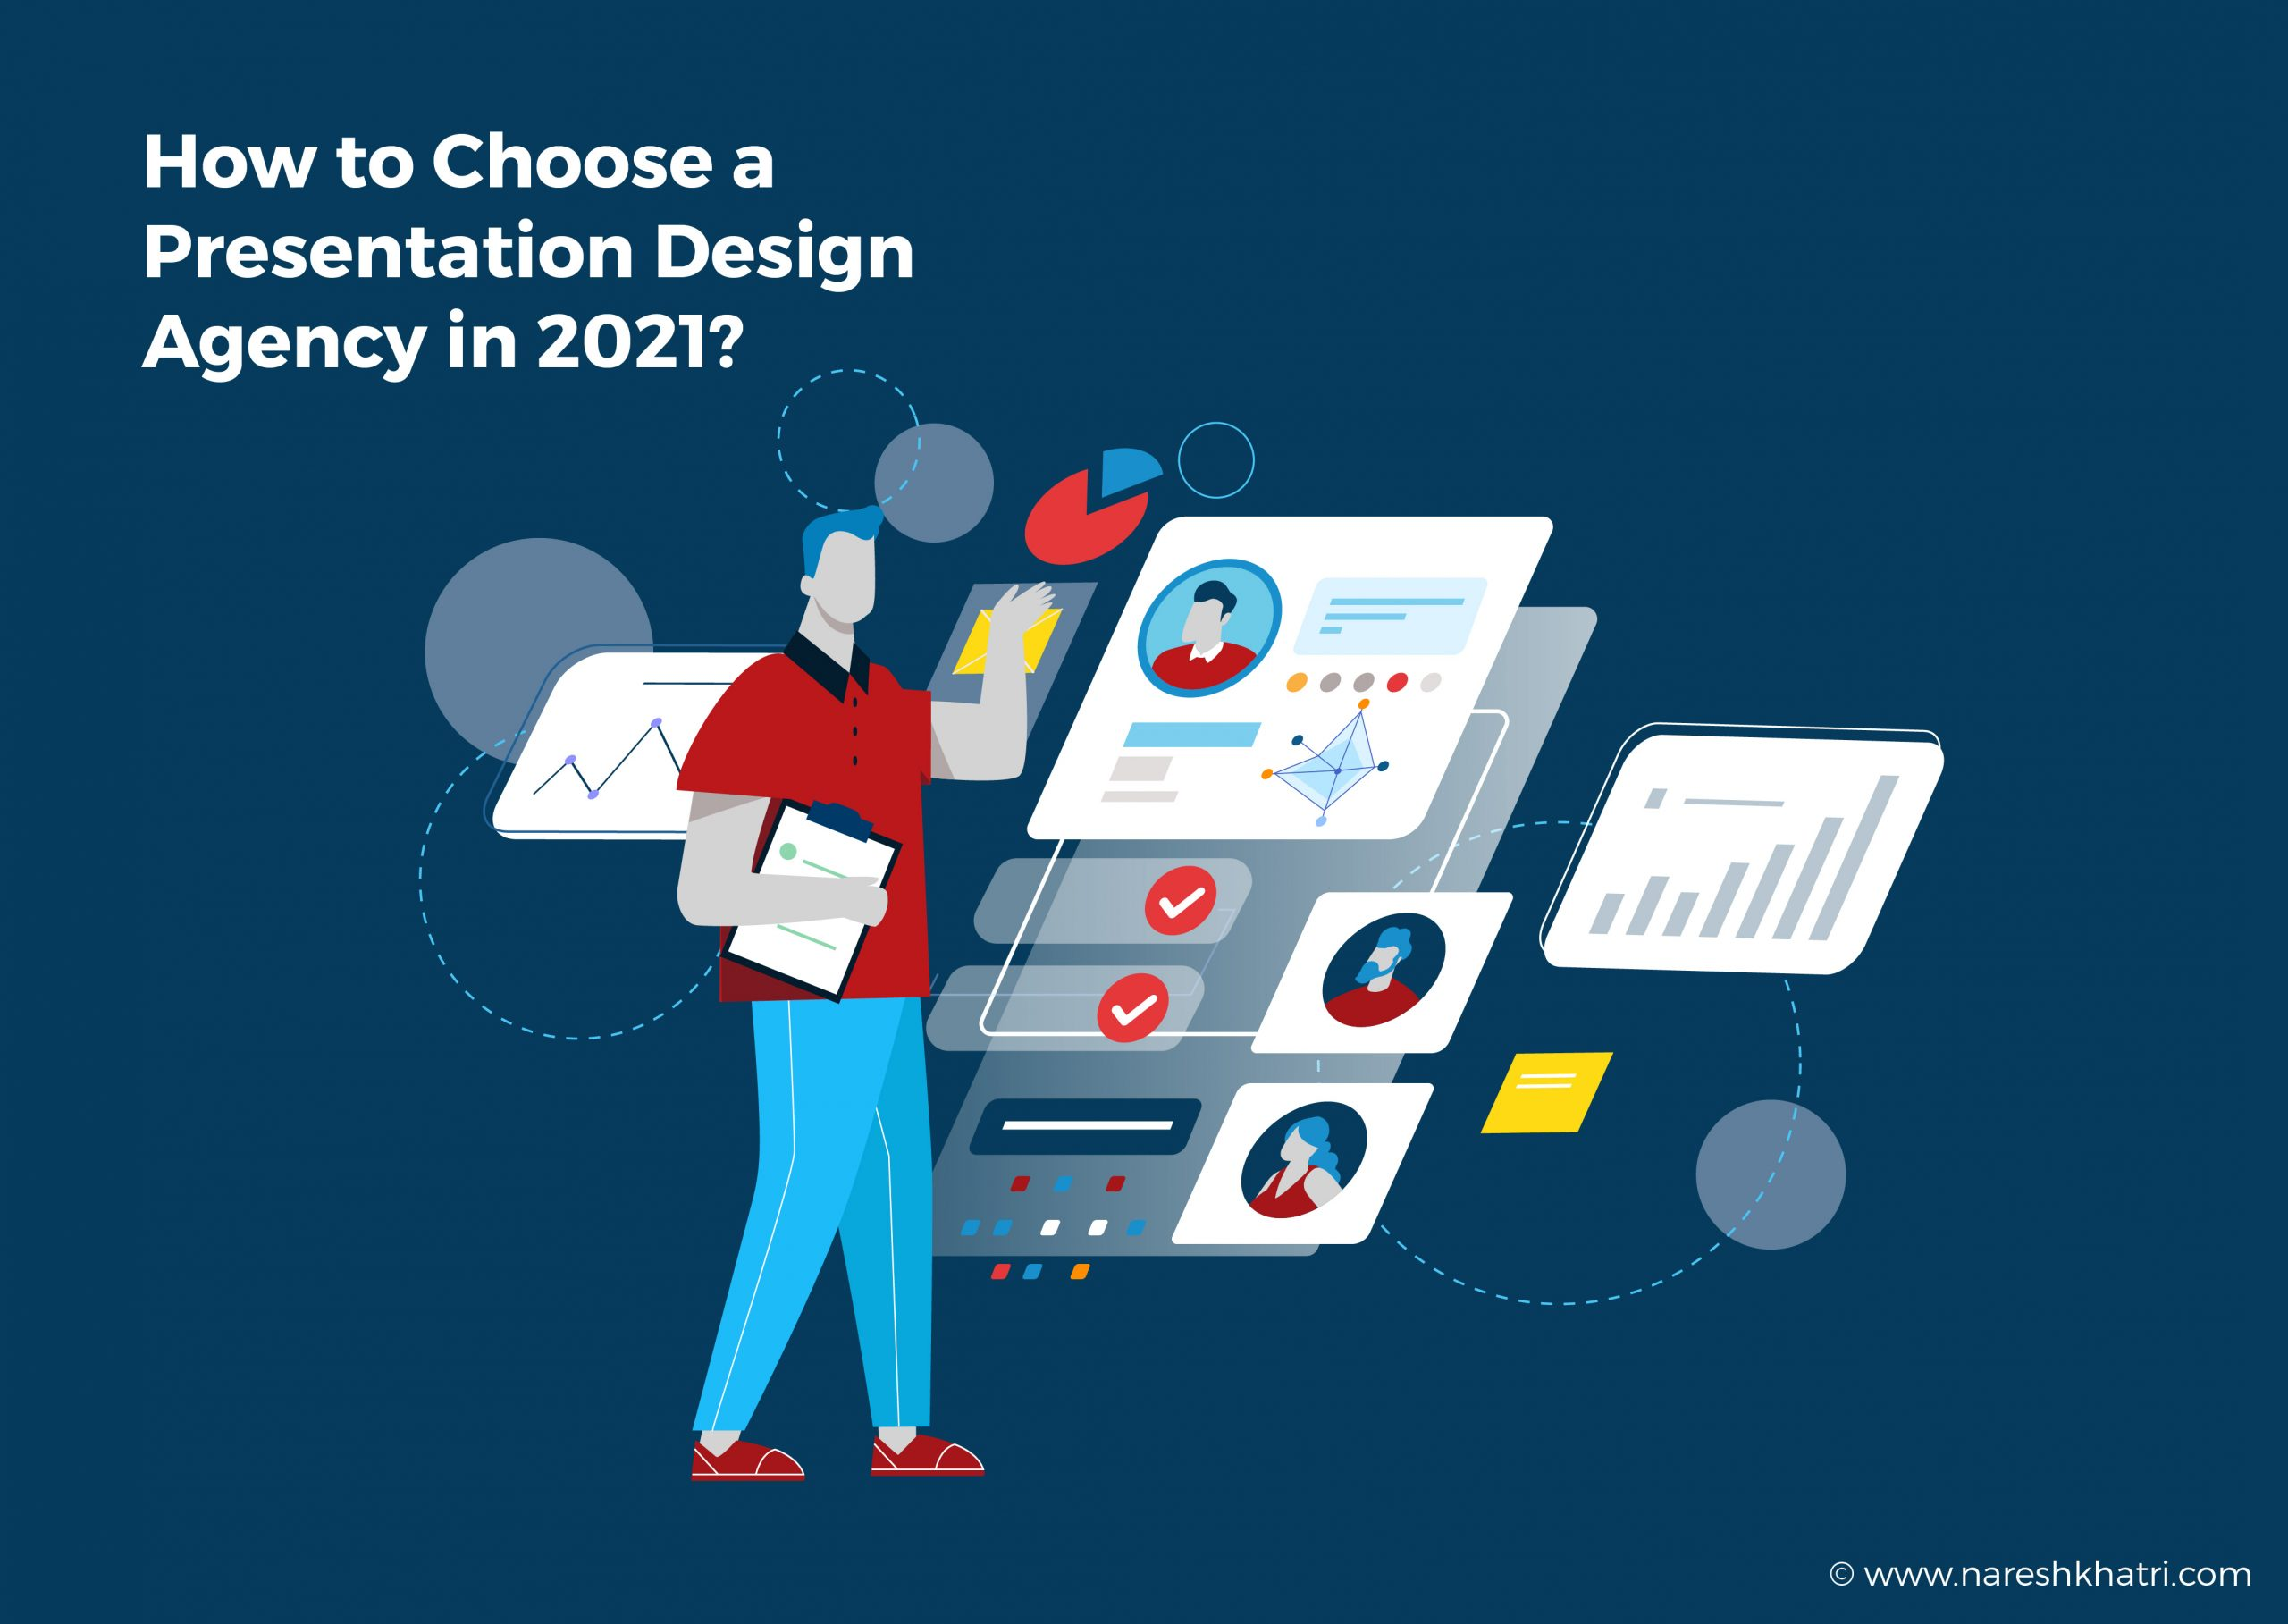 How to Choose a Presentation Design Agency in 2021?